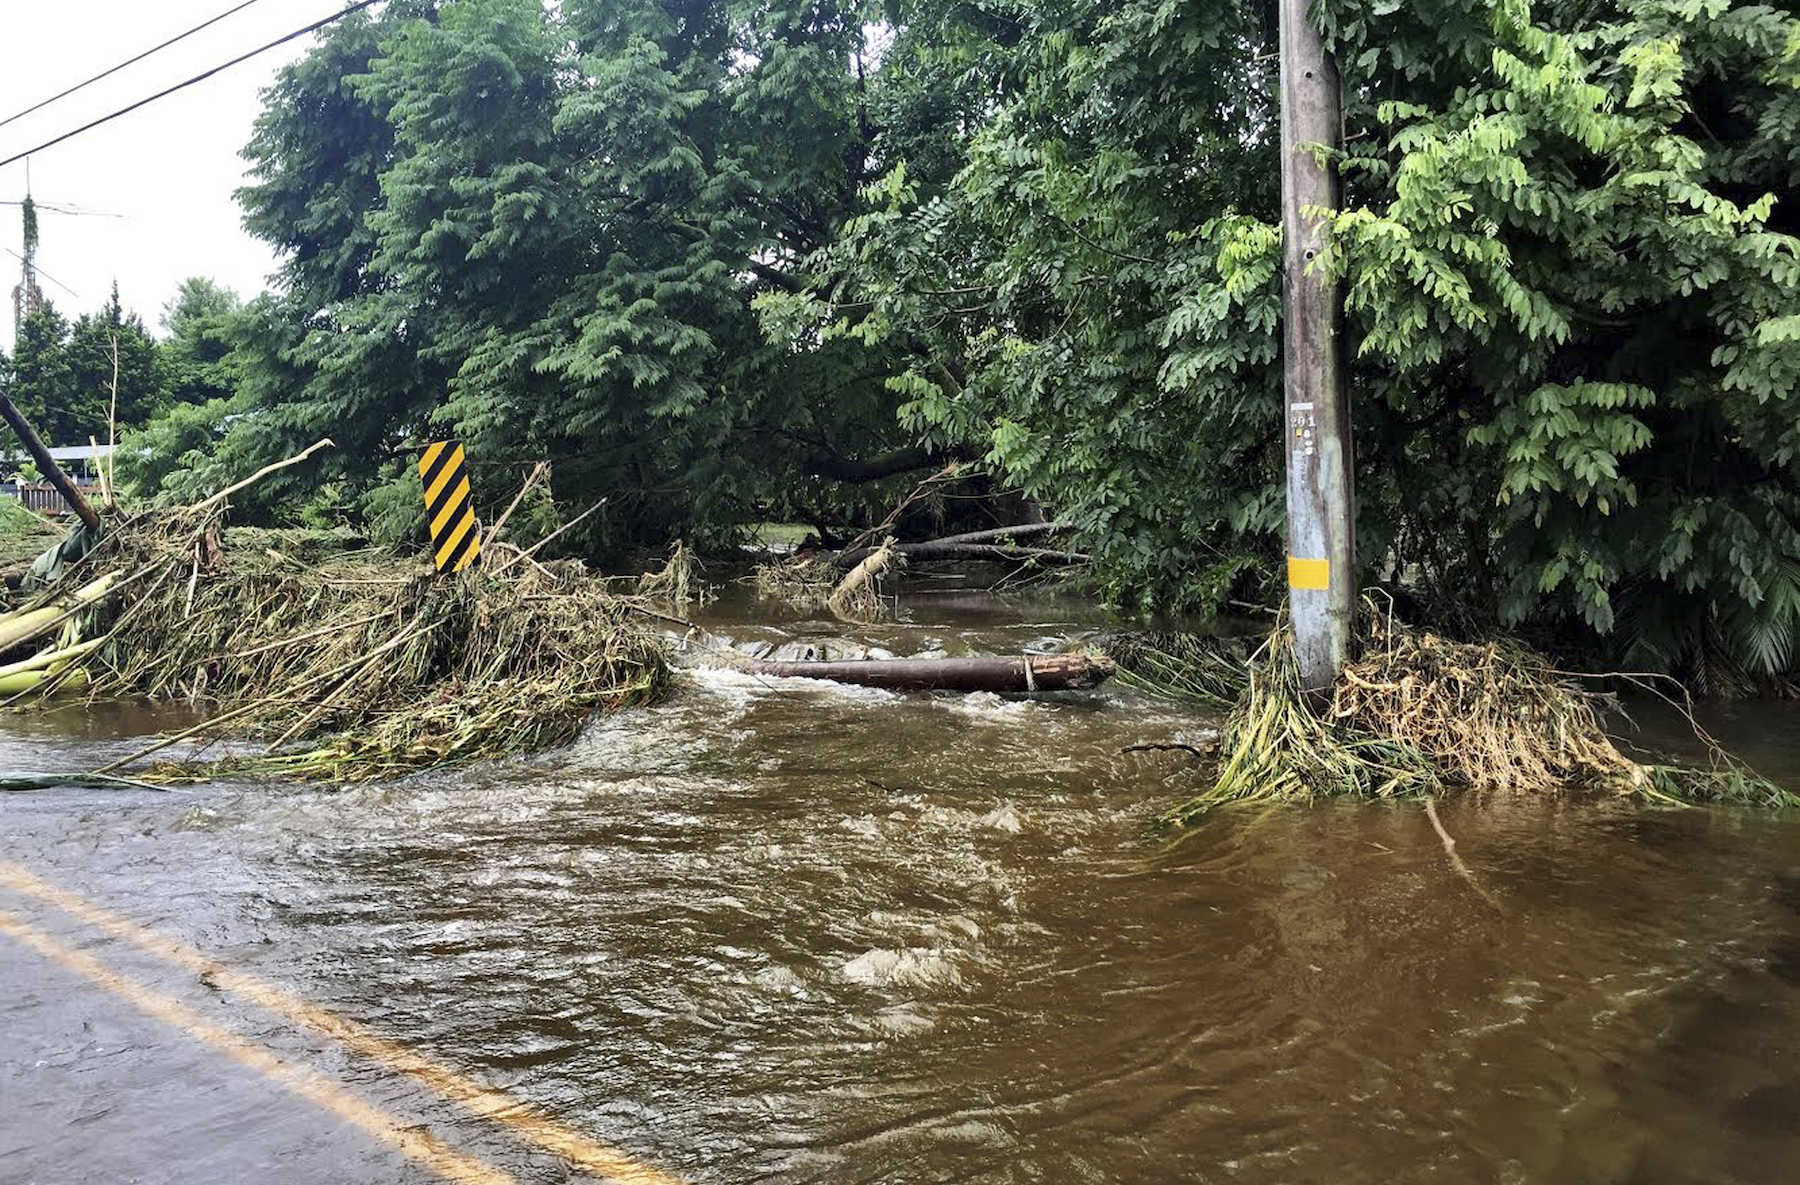 <div class='meta'><div class='origin-logo' data-origin='AP'></div><span class='caption-text' data-credit='Jessica Henricks via AP'>In this photo provided by Jessica Henricks, is flooding and damage from Hurricane Lane Friday, Aug. 24, 2018, near Hilo, Hawaii.</span></div>